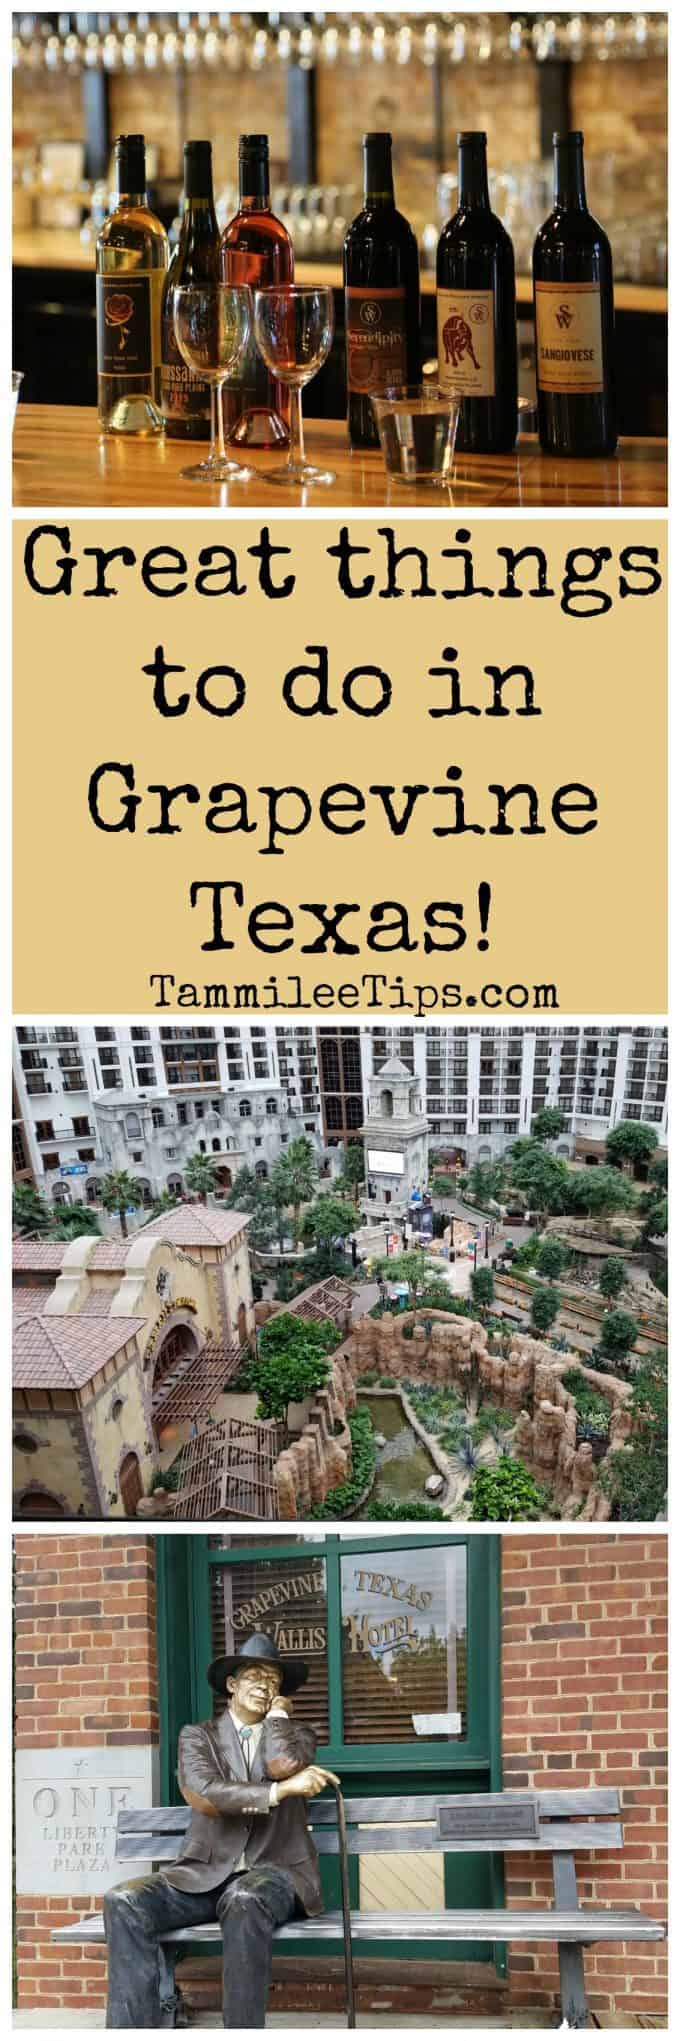 Great things to do in Grapevine, Texas!